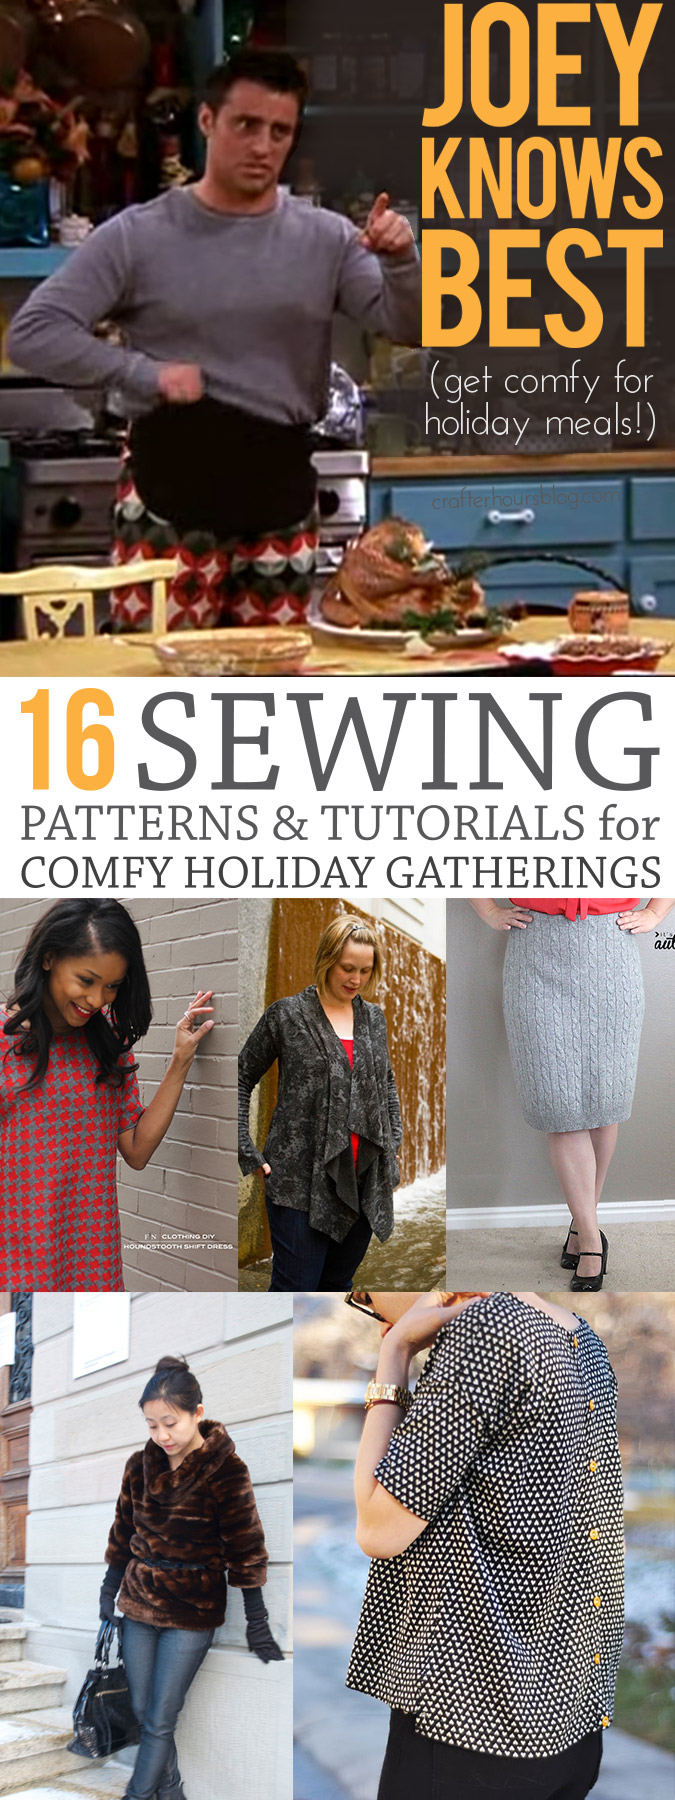 16 Things to Sew for Comfy Holiday Gatherings